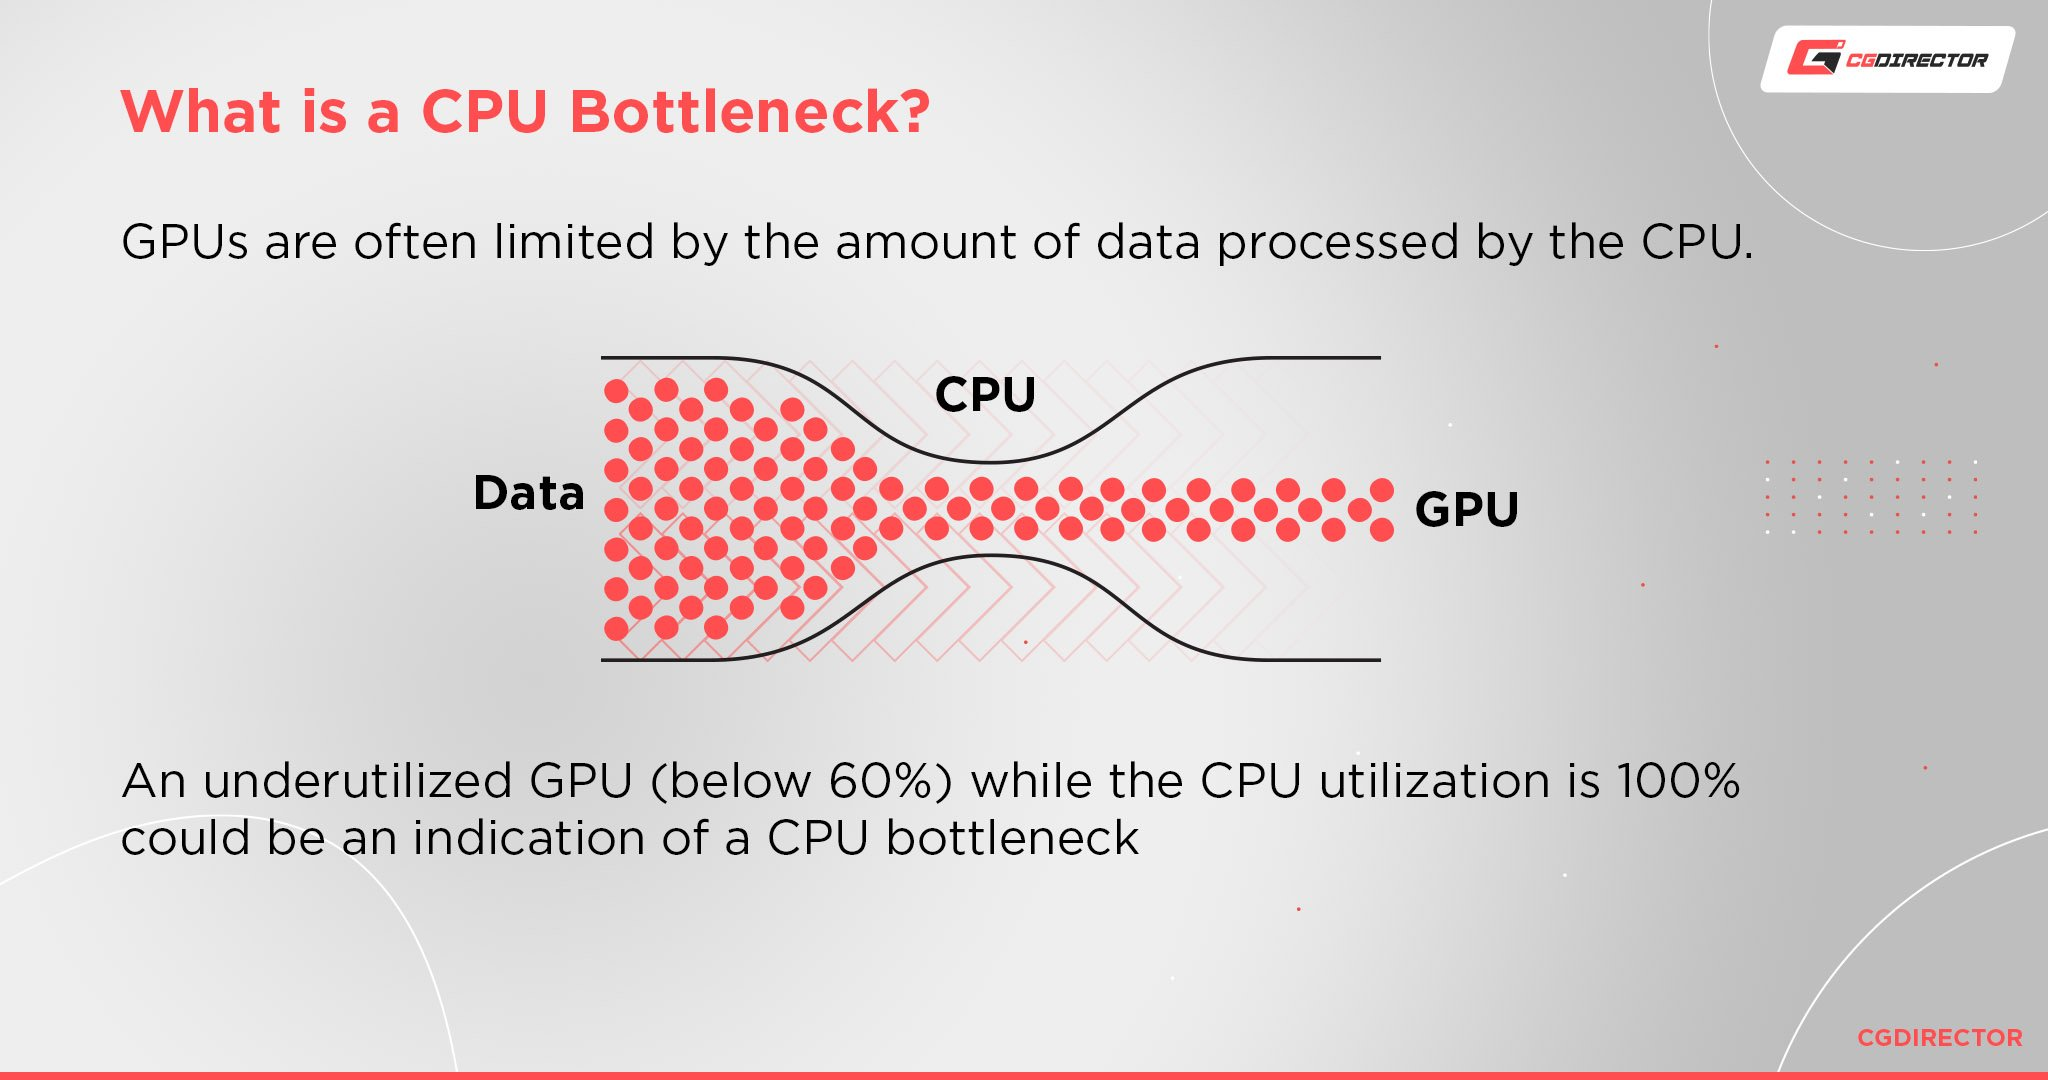 What is a CPU Bottleneck